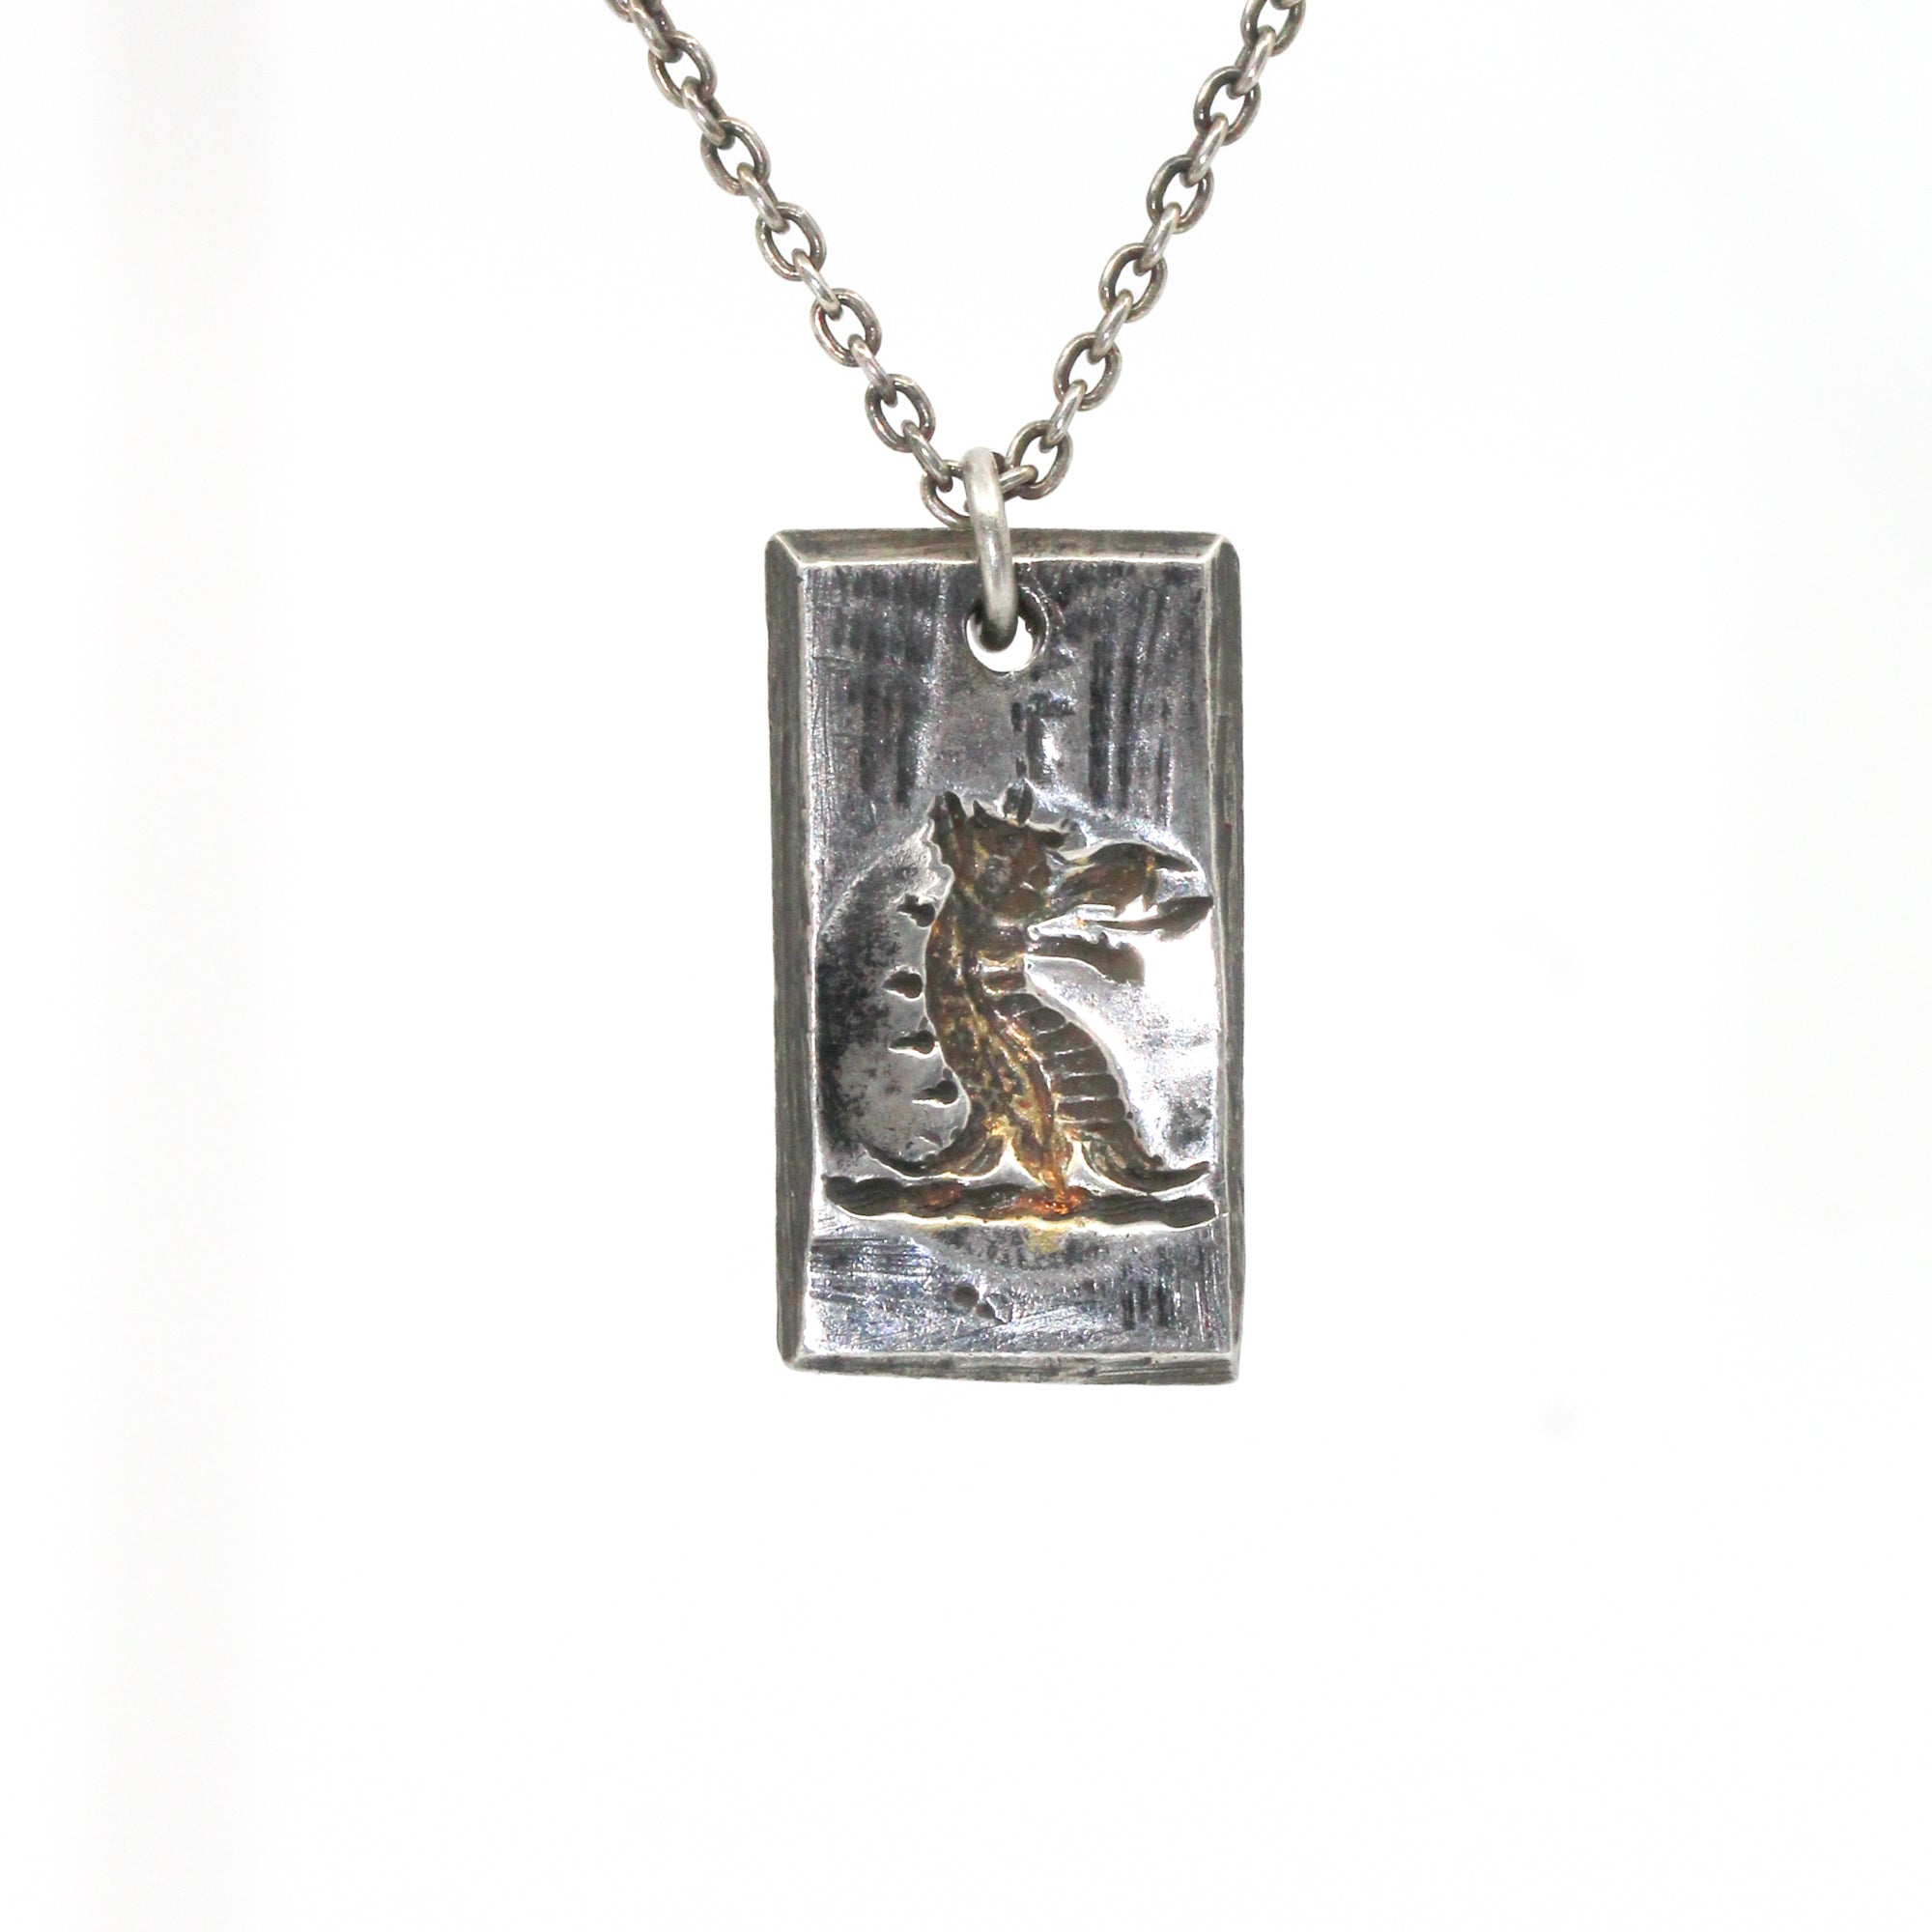 Illuminated Dragon Tag Necklace